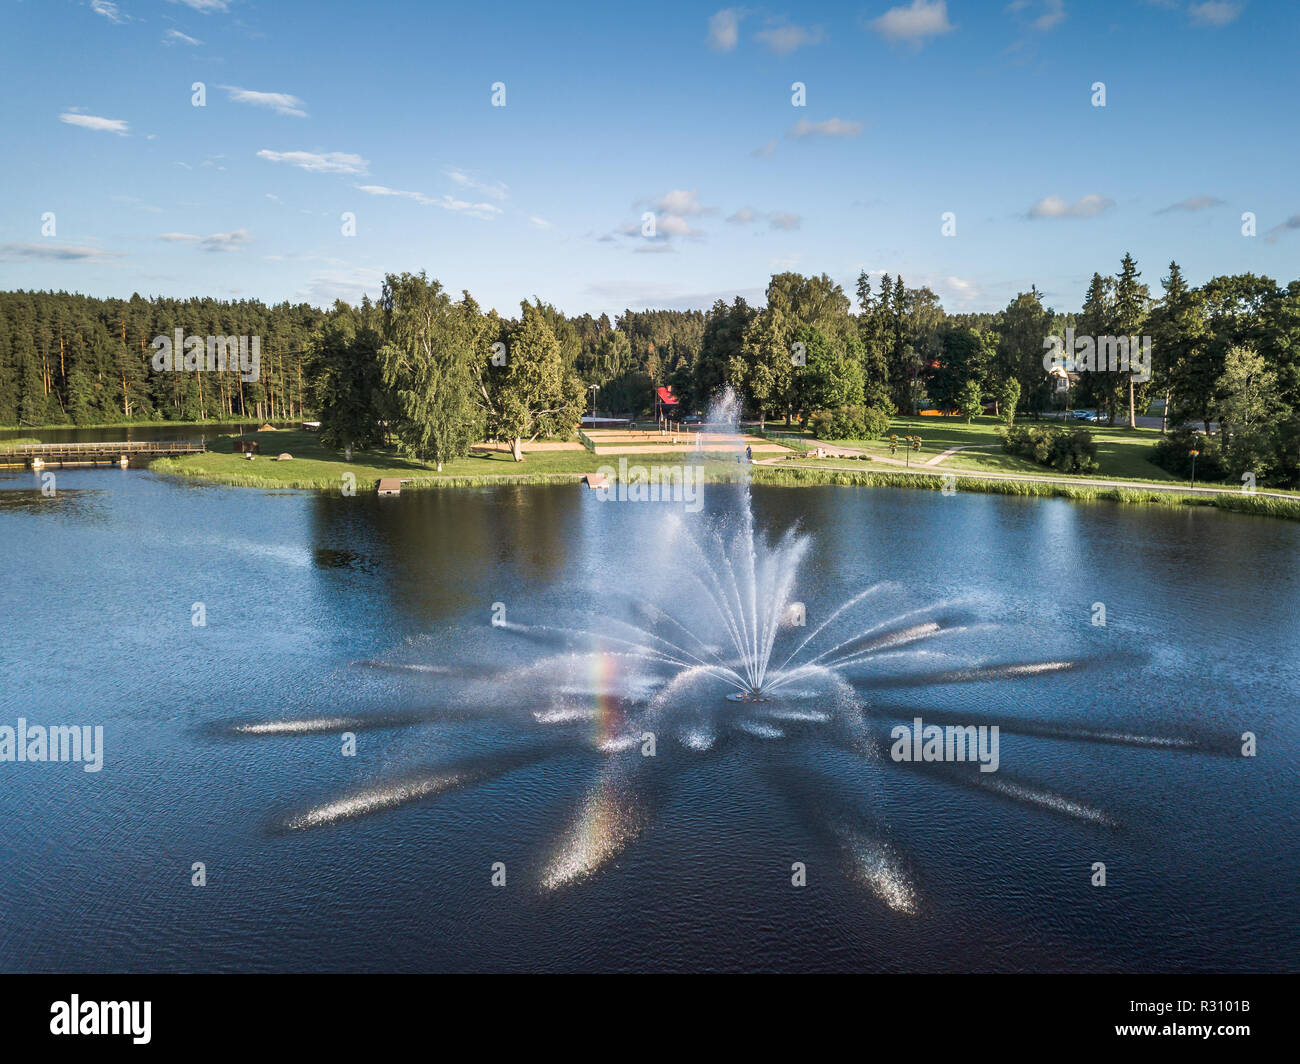 Aerial Drone Photography of the City with the Lake and Stadium Surrounded in Beautiful Spring Colors on a Sunny Day - Closeup on the Fountain - Stock Image